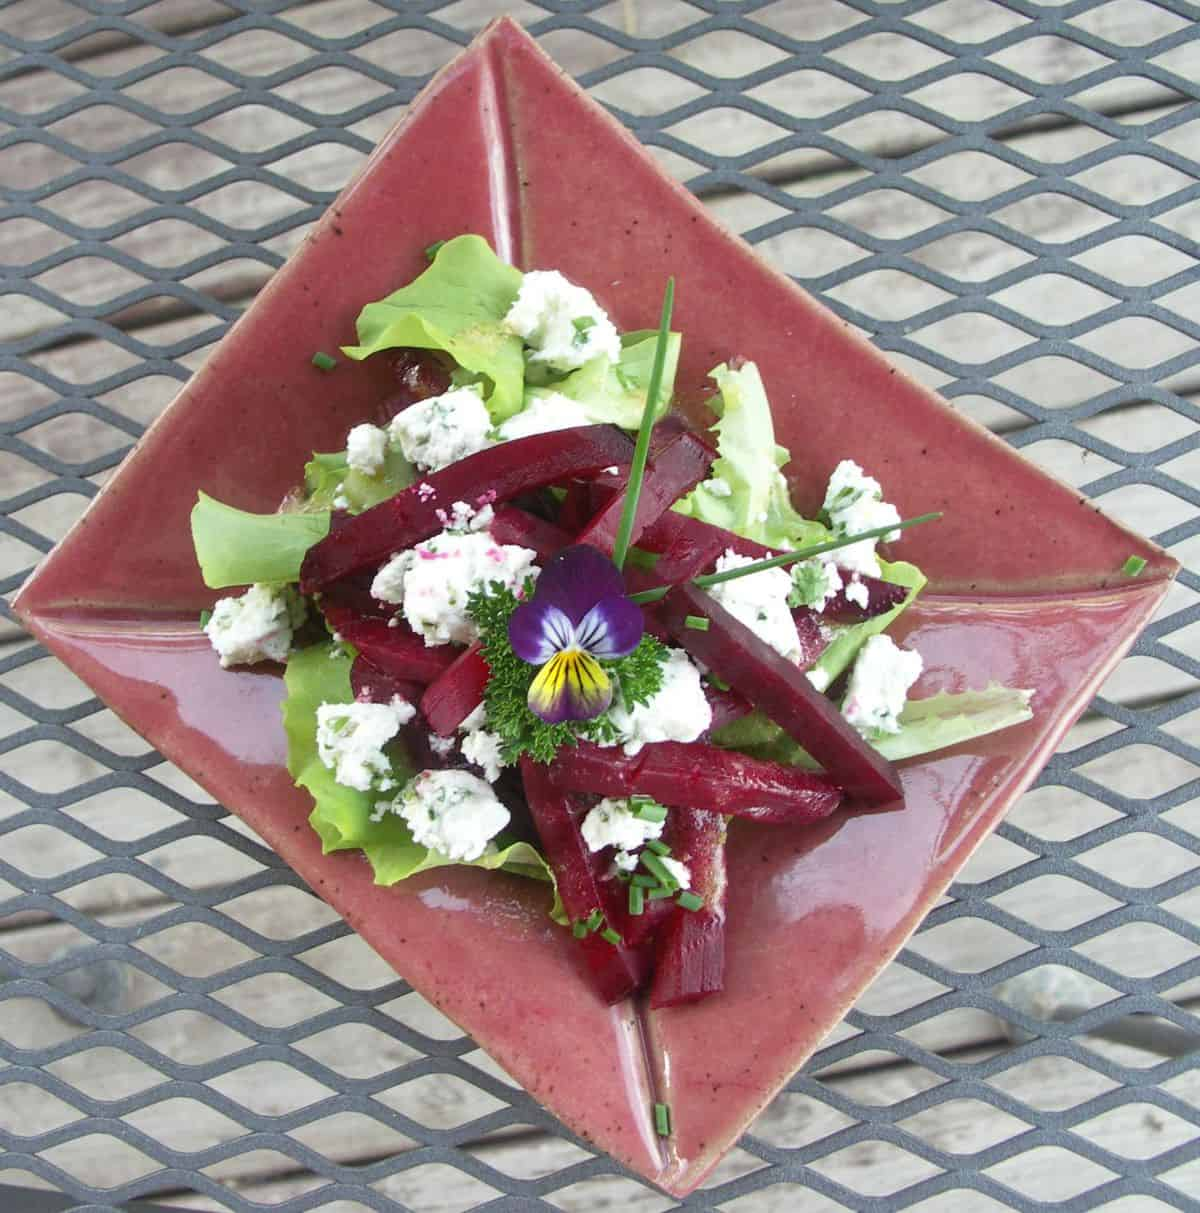 Roasted Beet Salad with Herbed Goat Cheese